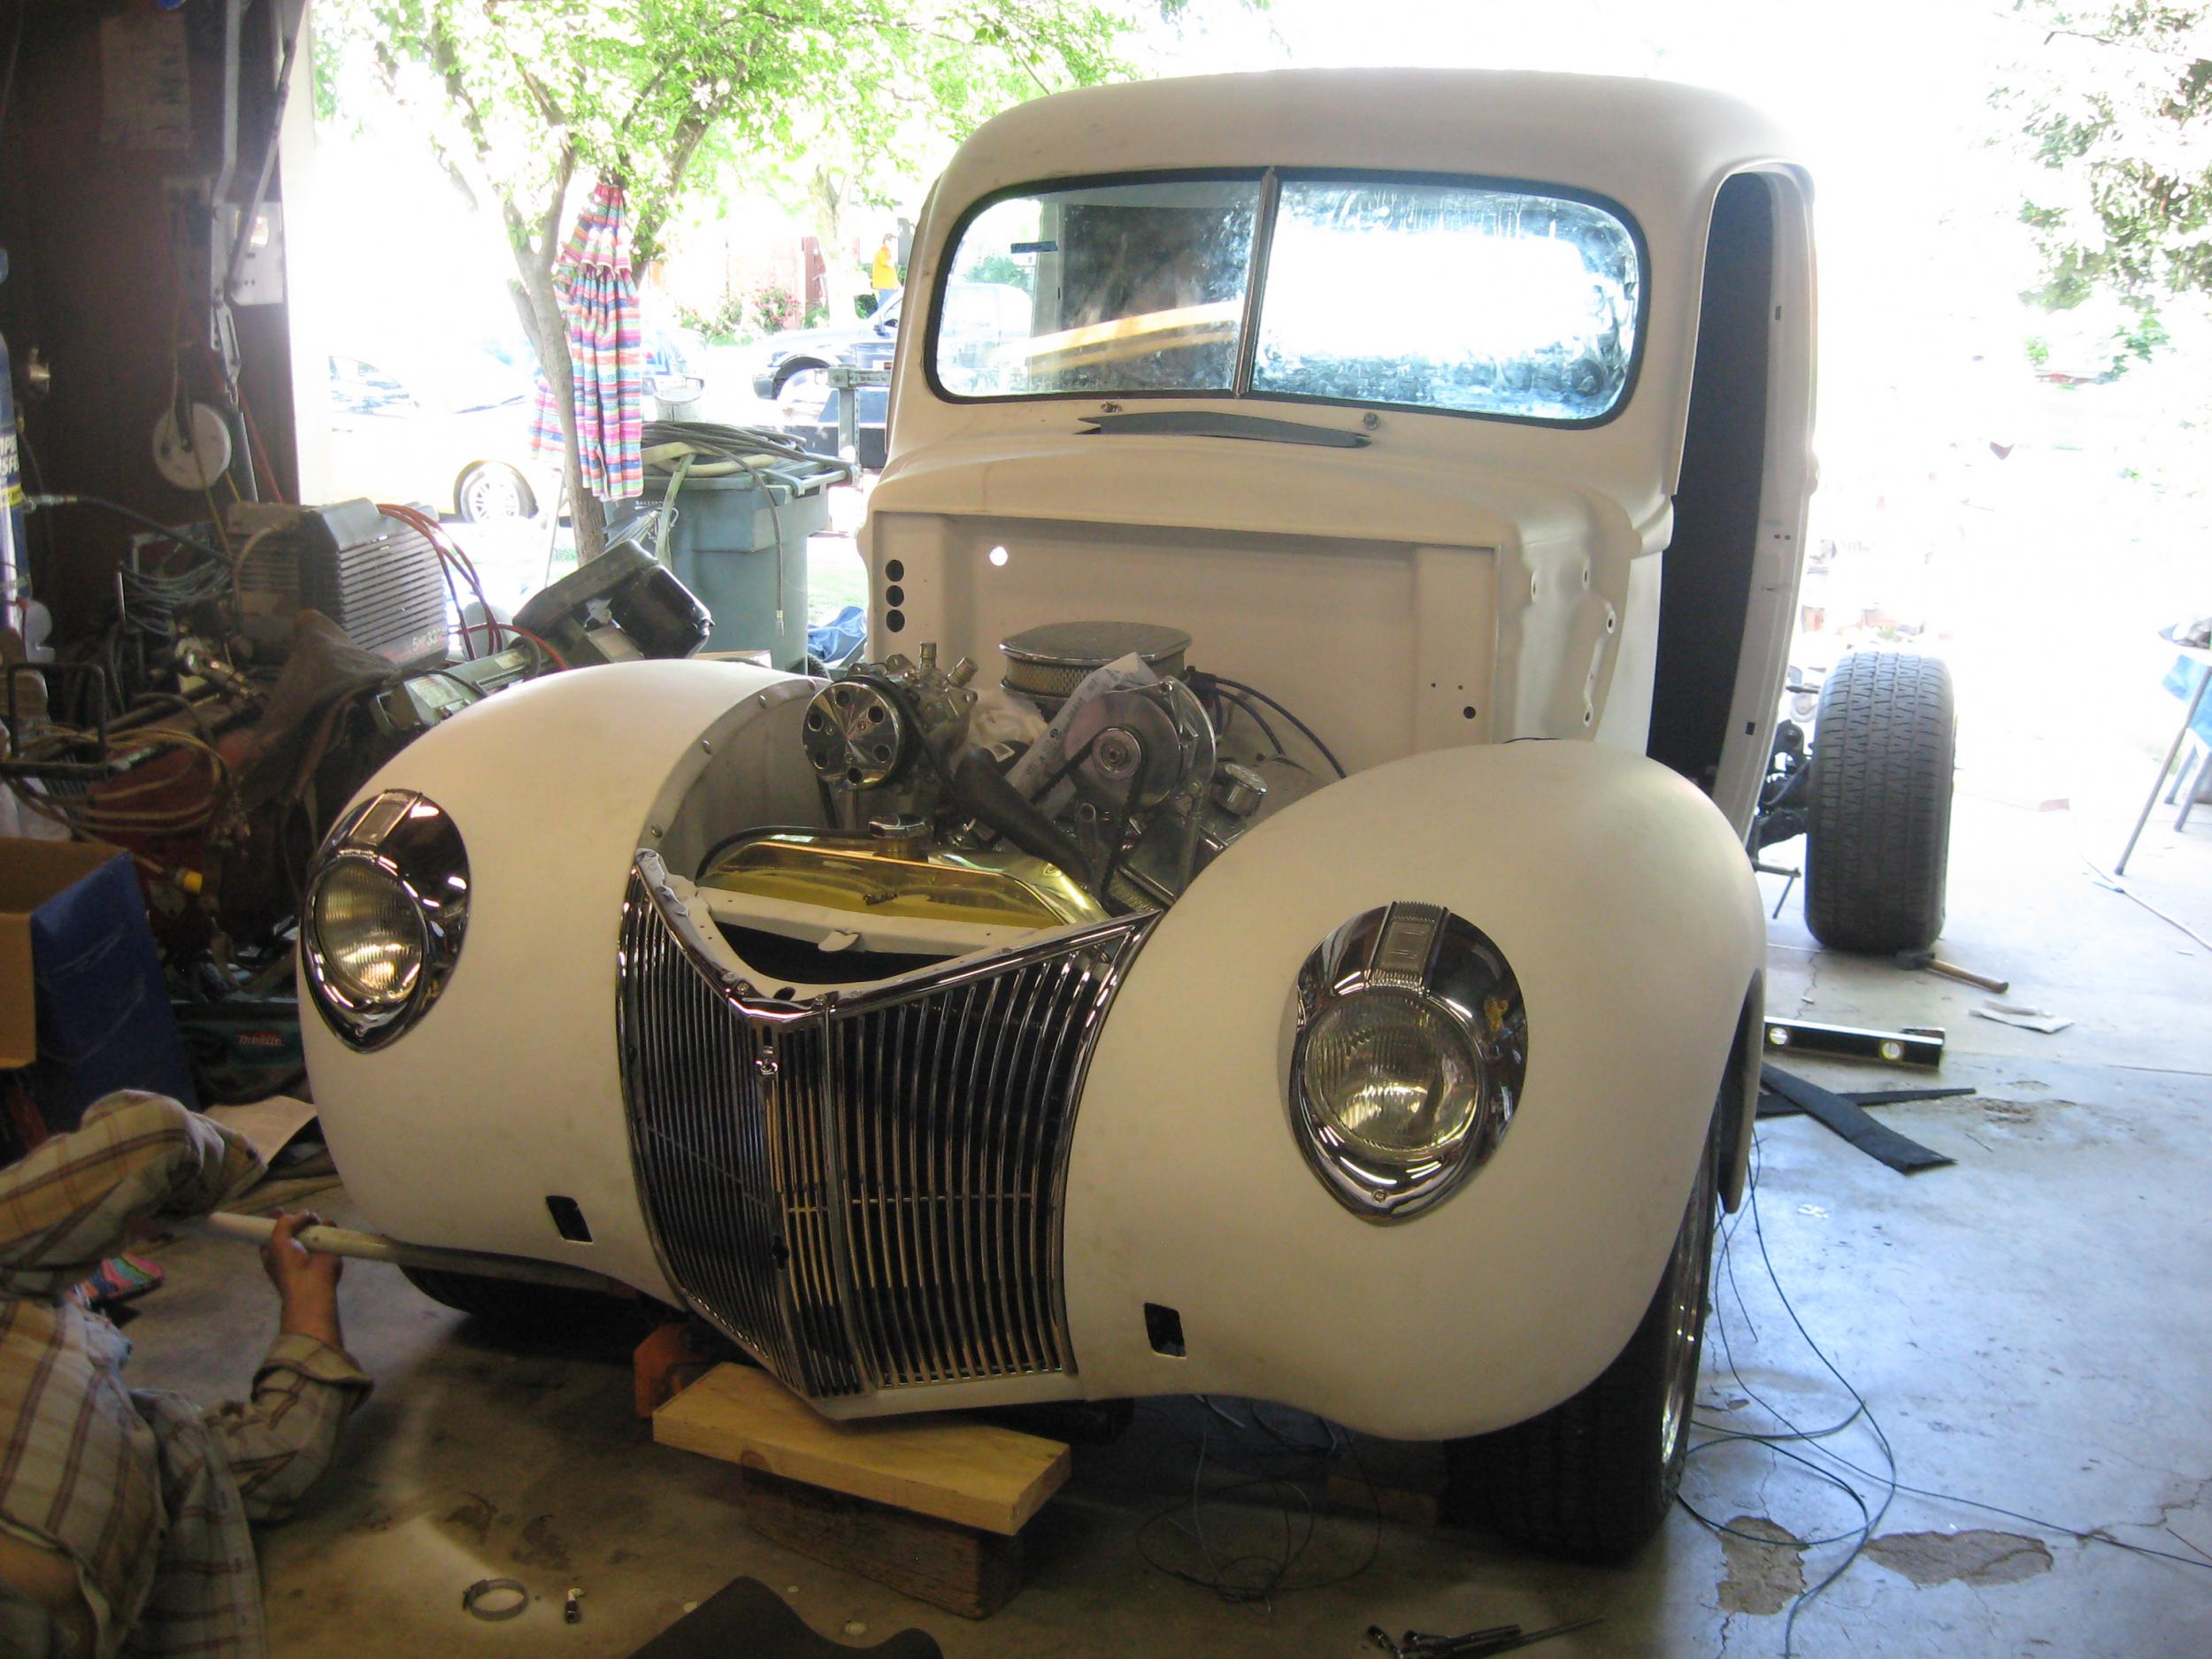 1940 Ford Pickup Build Progress - Page 12 - Chevy SSR Forum